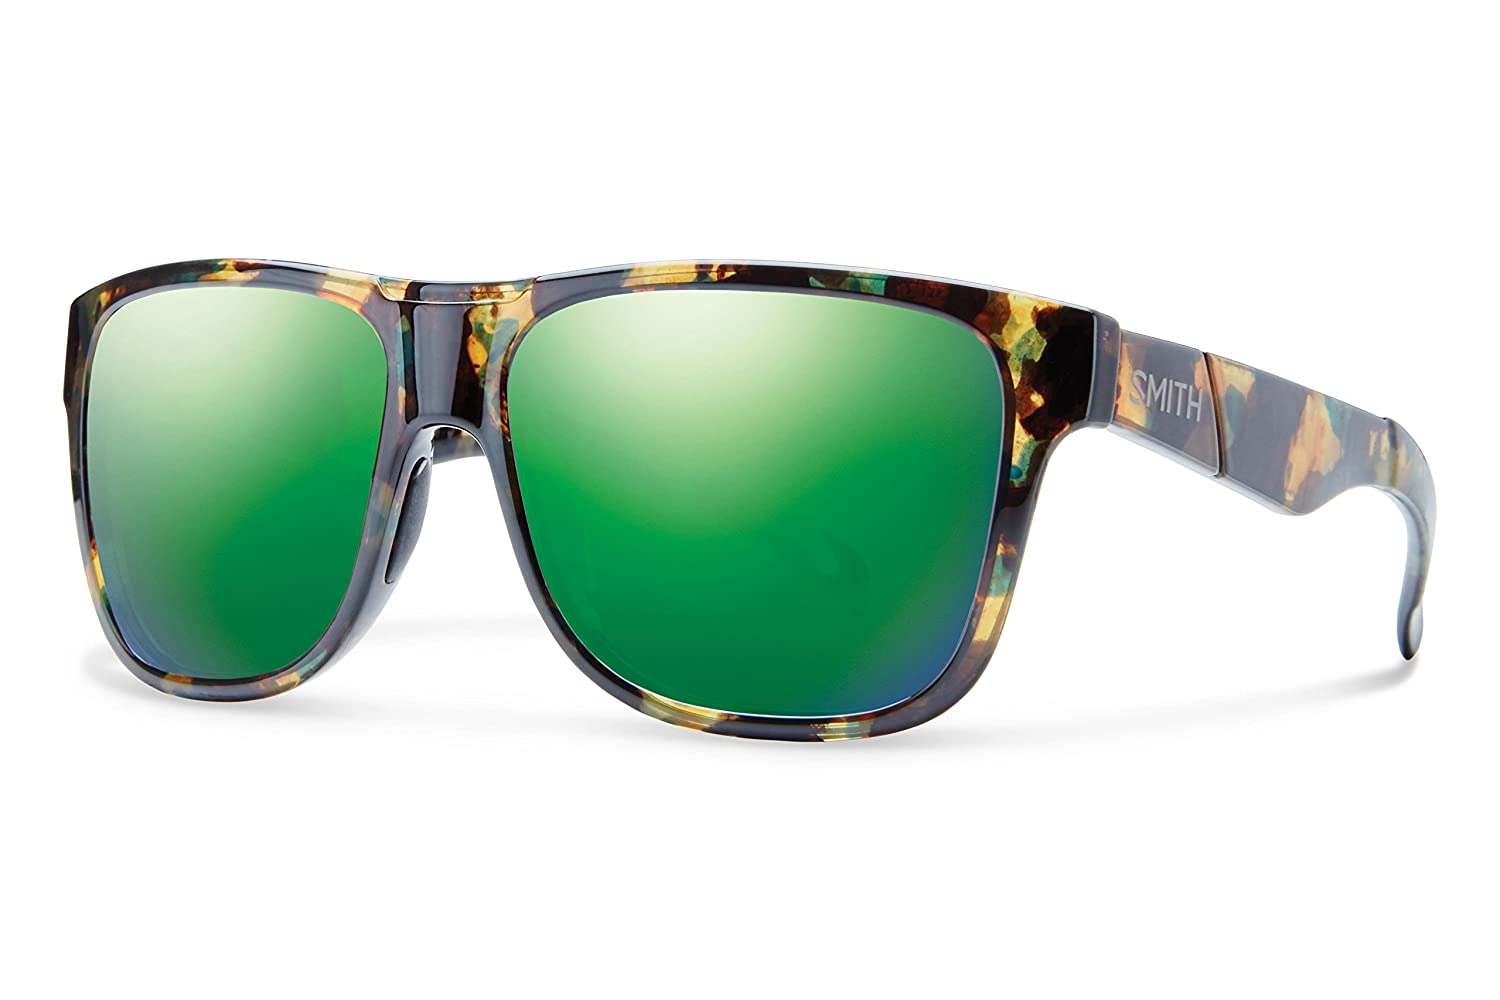 Smith Optics Lowdown XL Sunglasses LOWDOWN-3